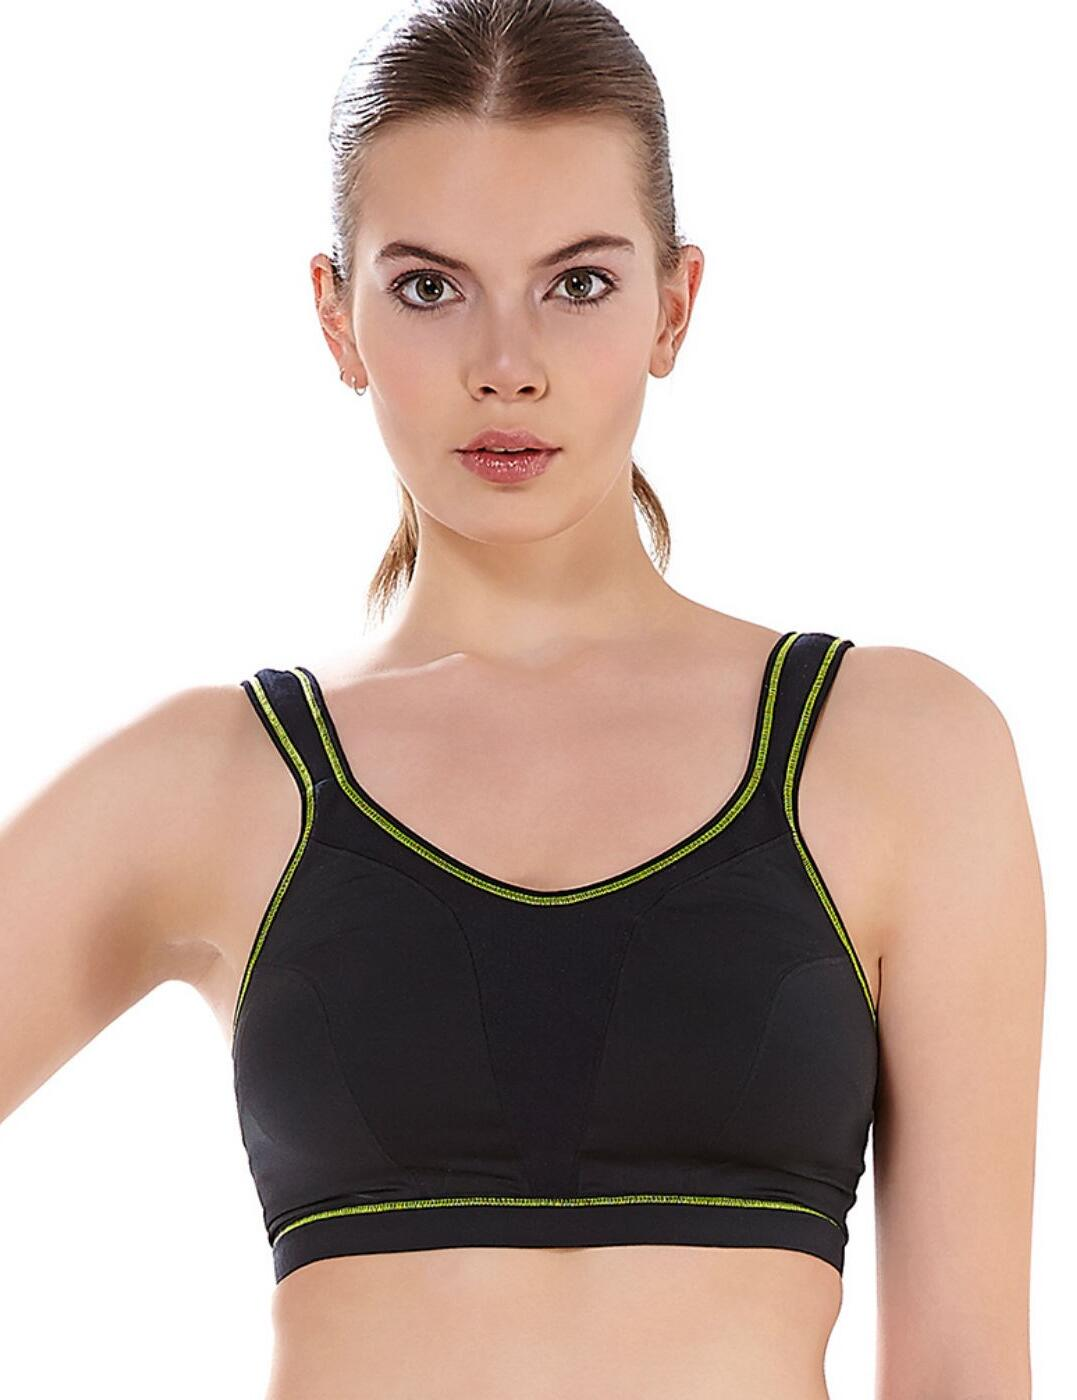 2247af9e41a Freya Active Force Crop Top 4000 High Impact Soft Cup Non-Wired ...